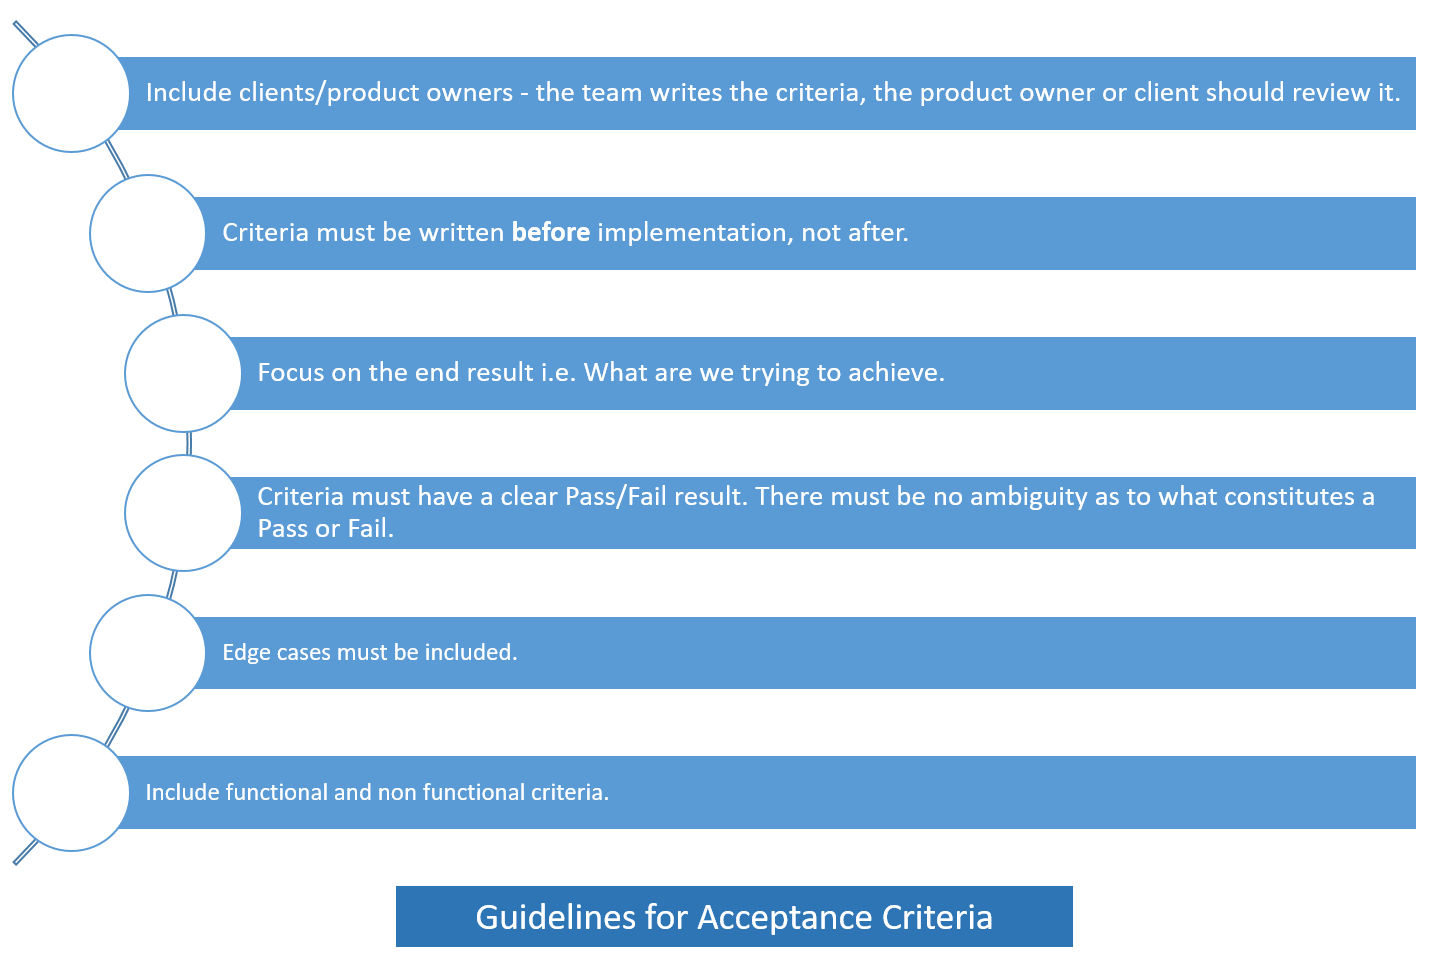 Guidelines for Acceptance Criteria